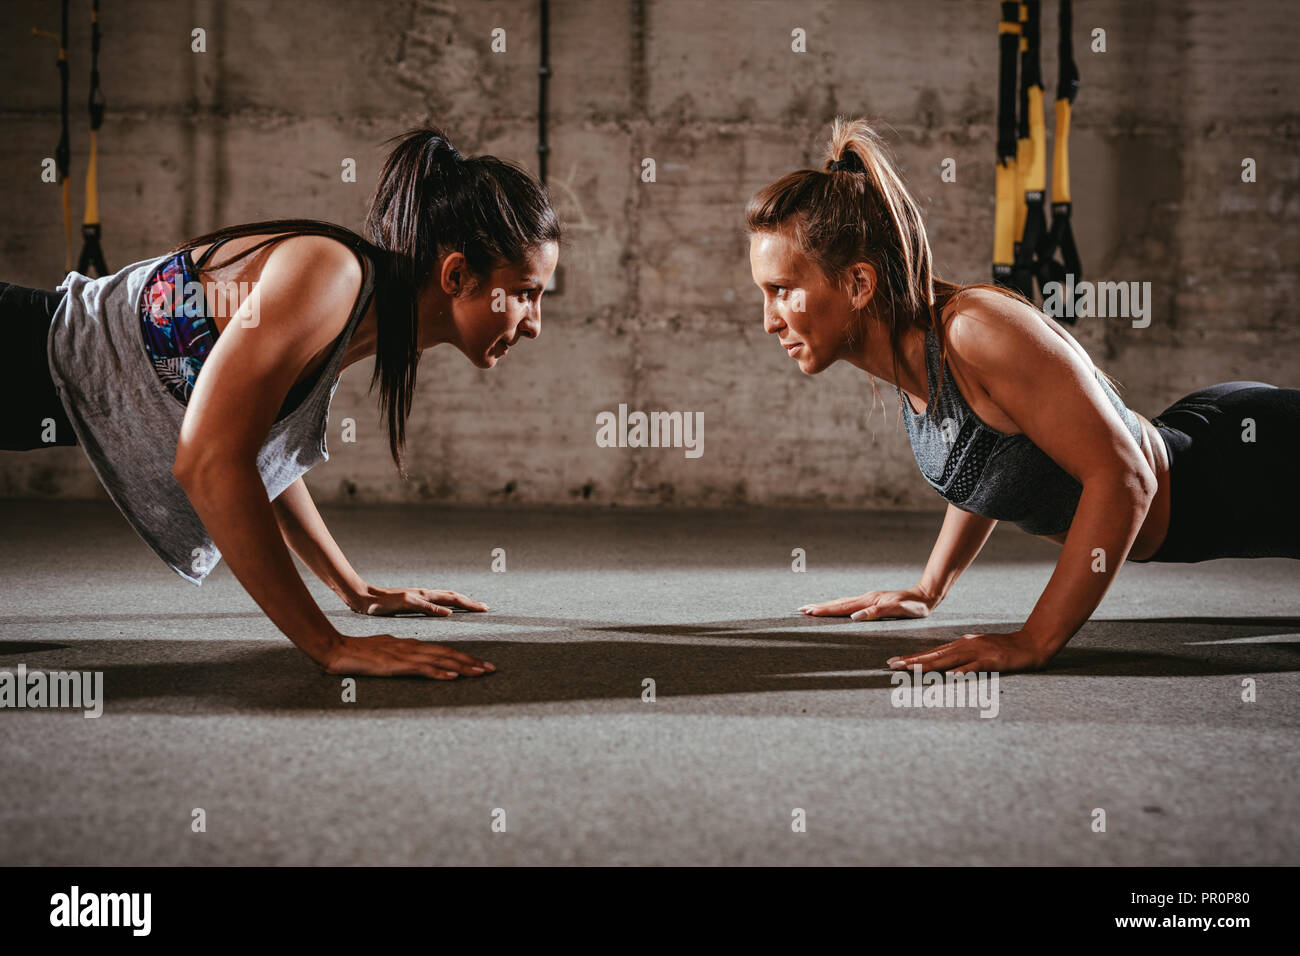 Crossfit Girls High Resolution Stock Photography and Images - Alamy